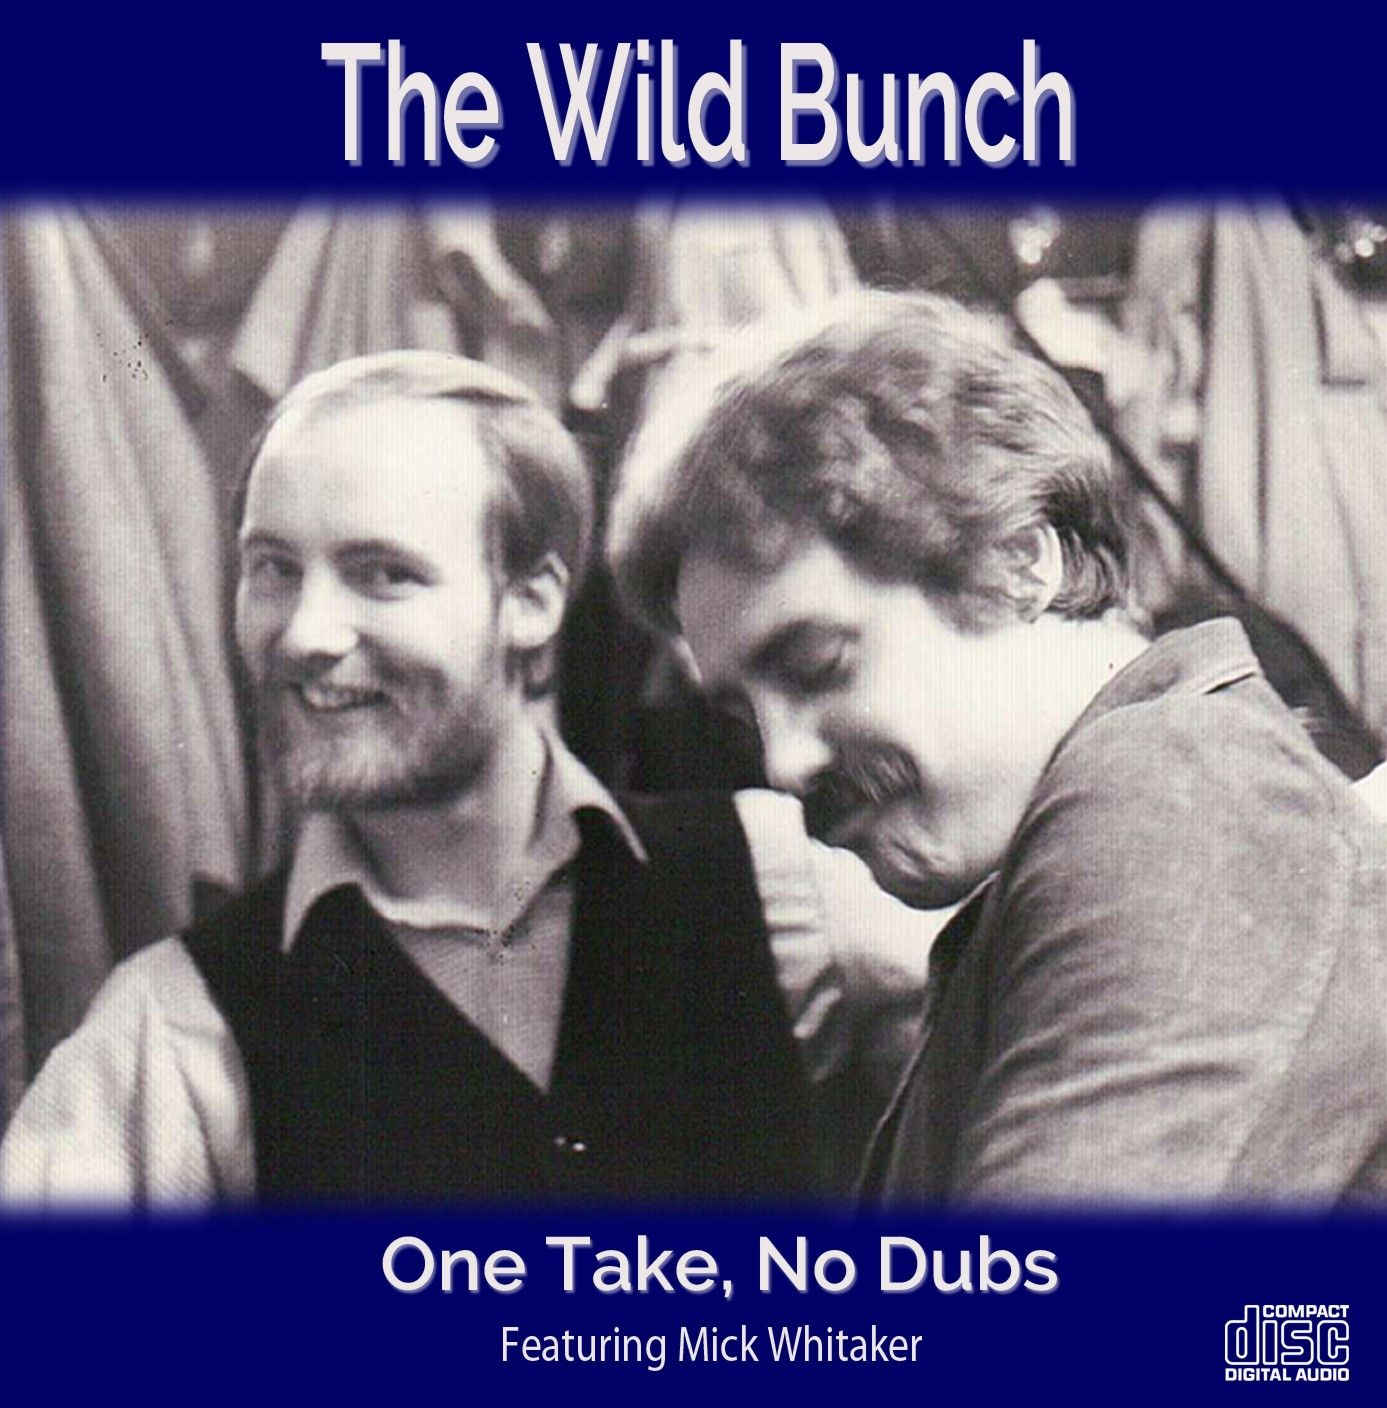 Mick Whitaker and The Wild Bunch - One Take, No Dubs